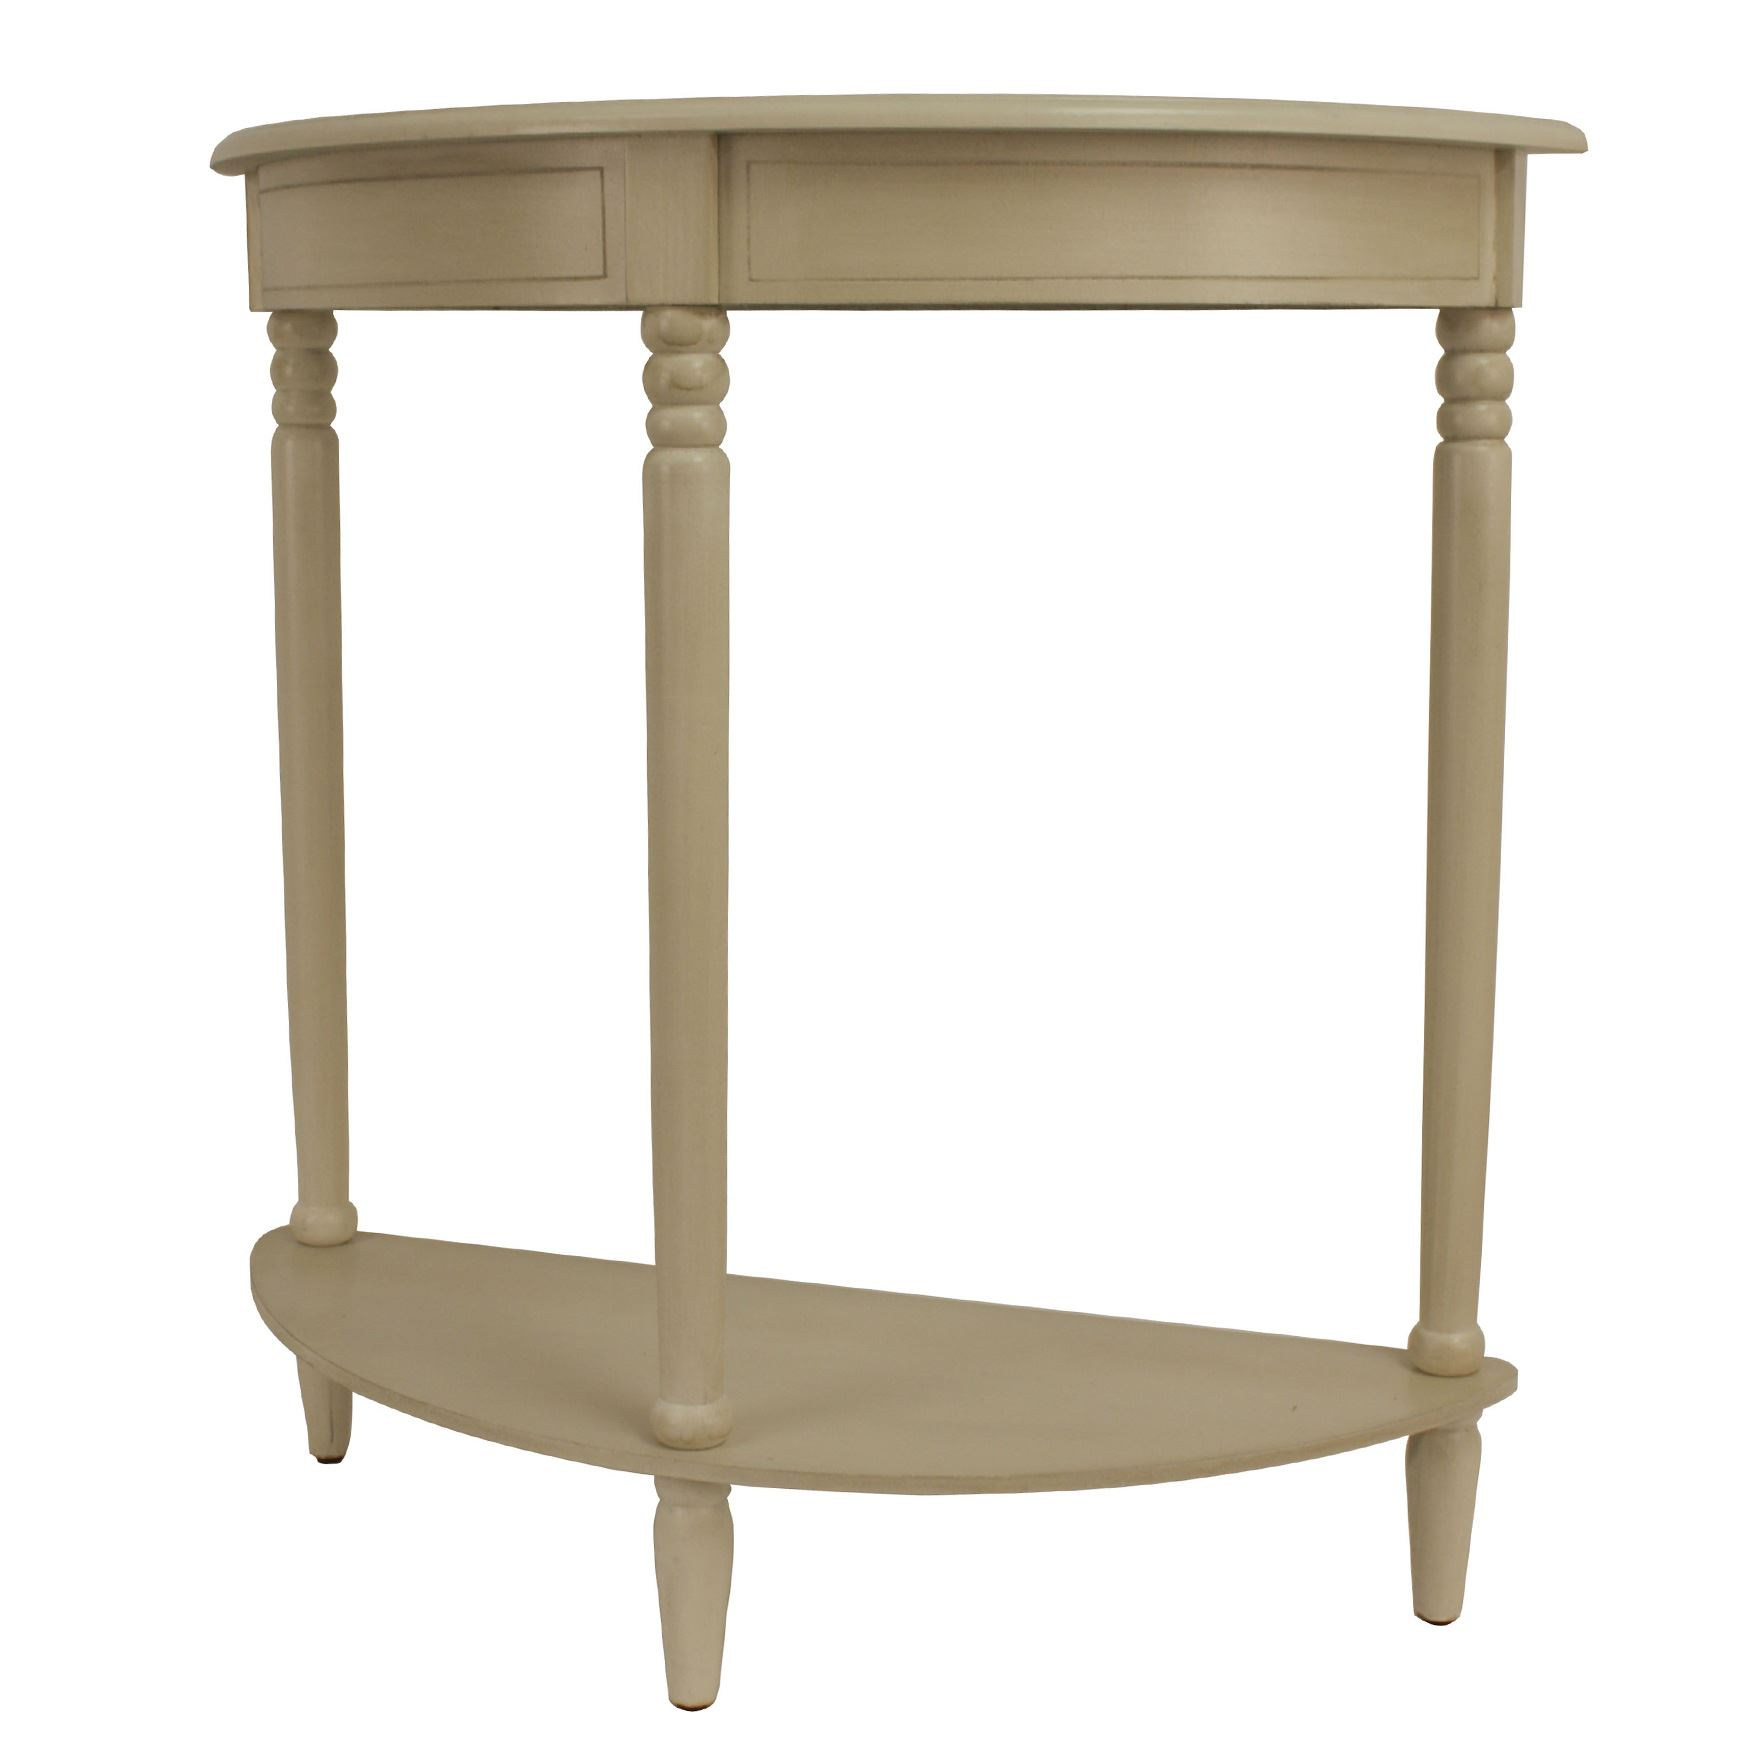 antique white simplicity half round accent table plus size coffee west elm stools entry furniture pieces danish modern side outdoor storage cupboard lamps tree lamp knurl nesting